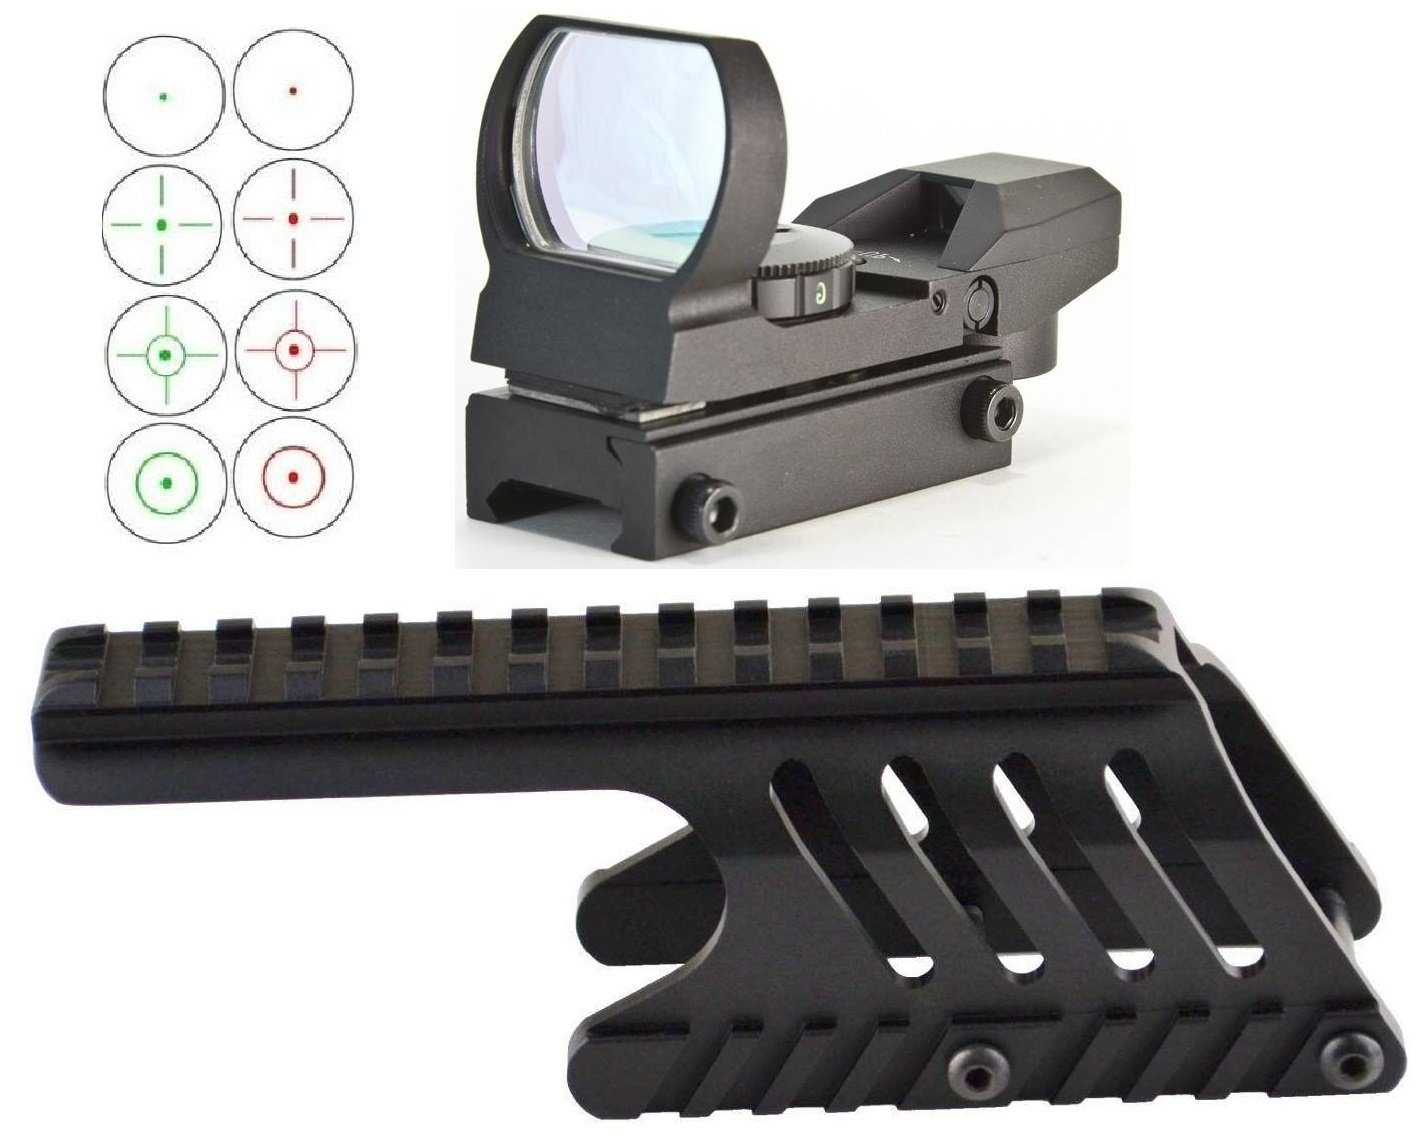 Ultimate Arms Gear Remington 870 12 Gauge Shotgun Fotos Wingmaster Parts List Wallpapers Compatible See Through Saddle Scope Sight Rail Mount Hard Anodized Machined Cqb 4 Reticle